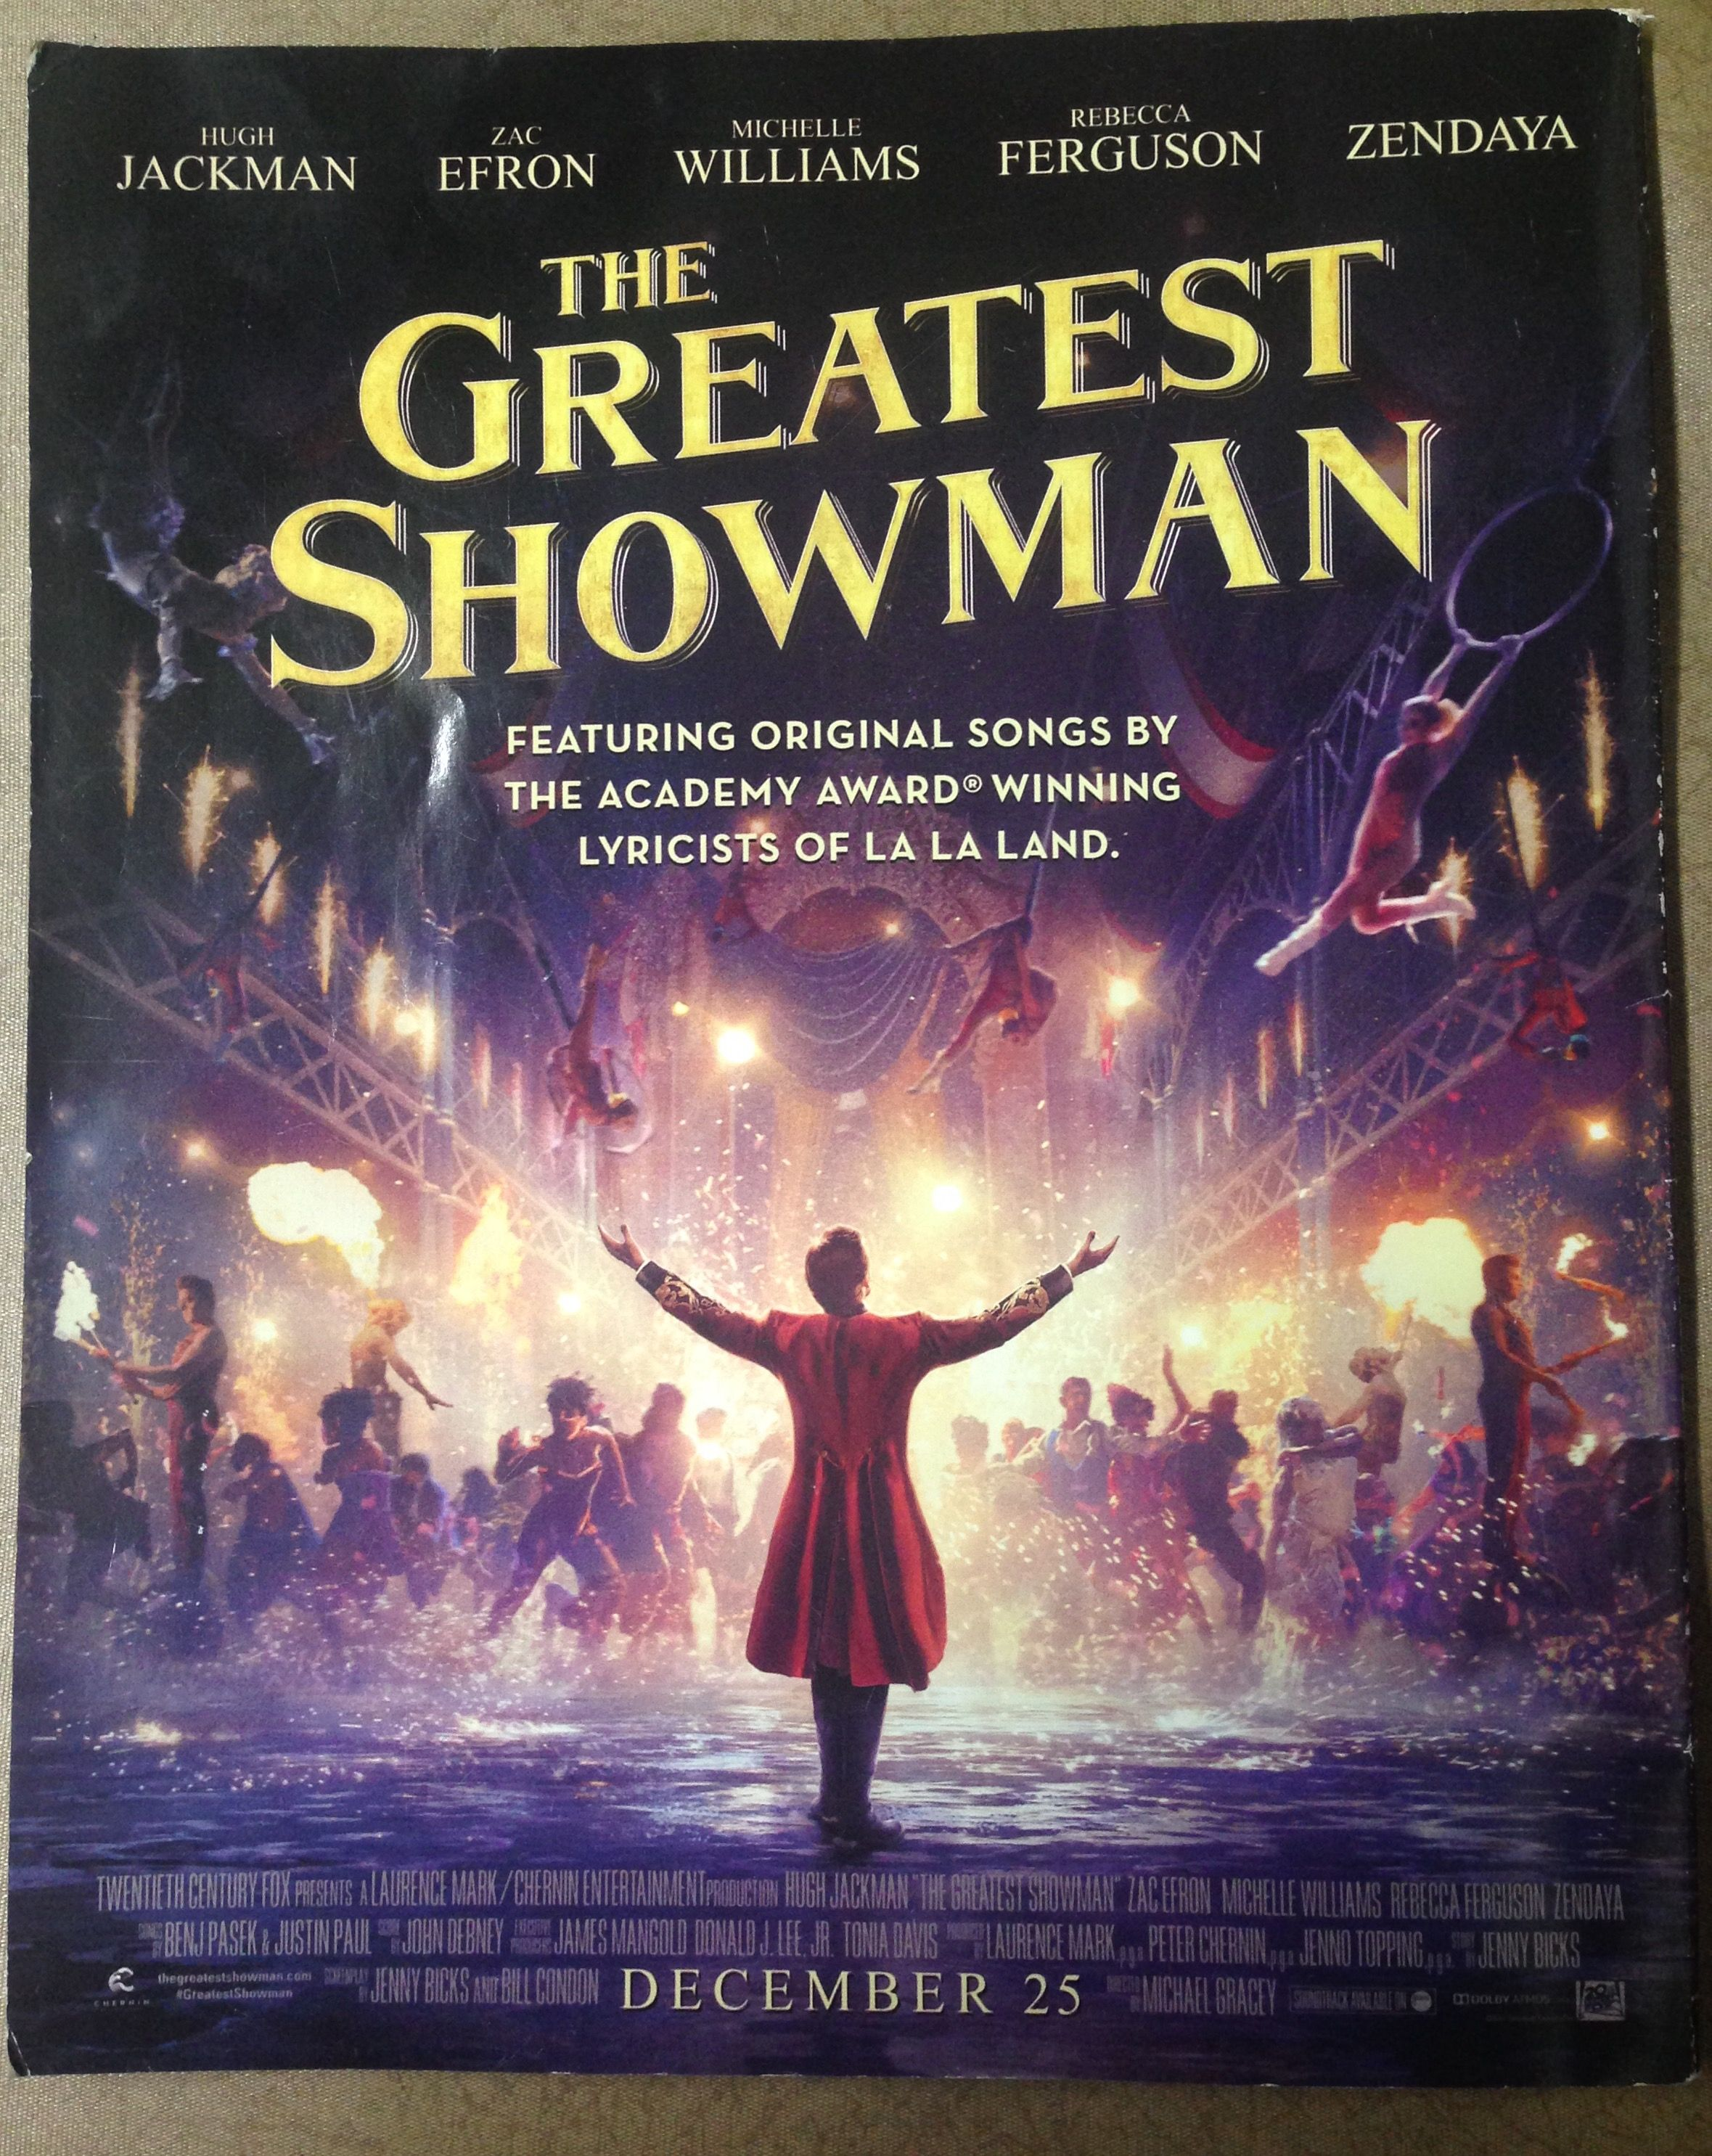 The Greatest Showman on Magazine Back Cover | The greatest showman ...